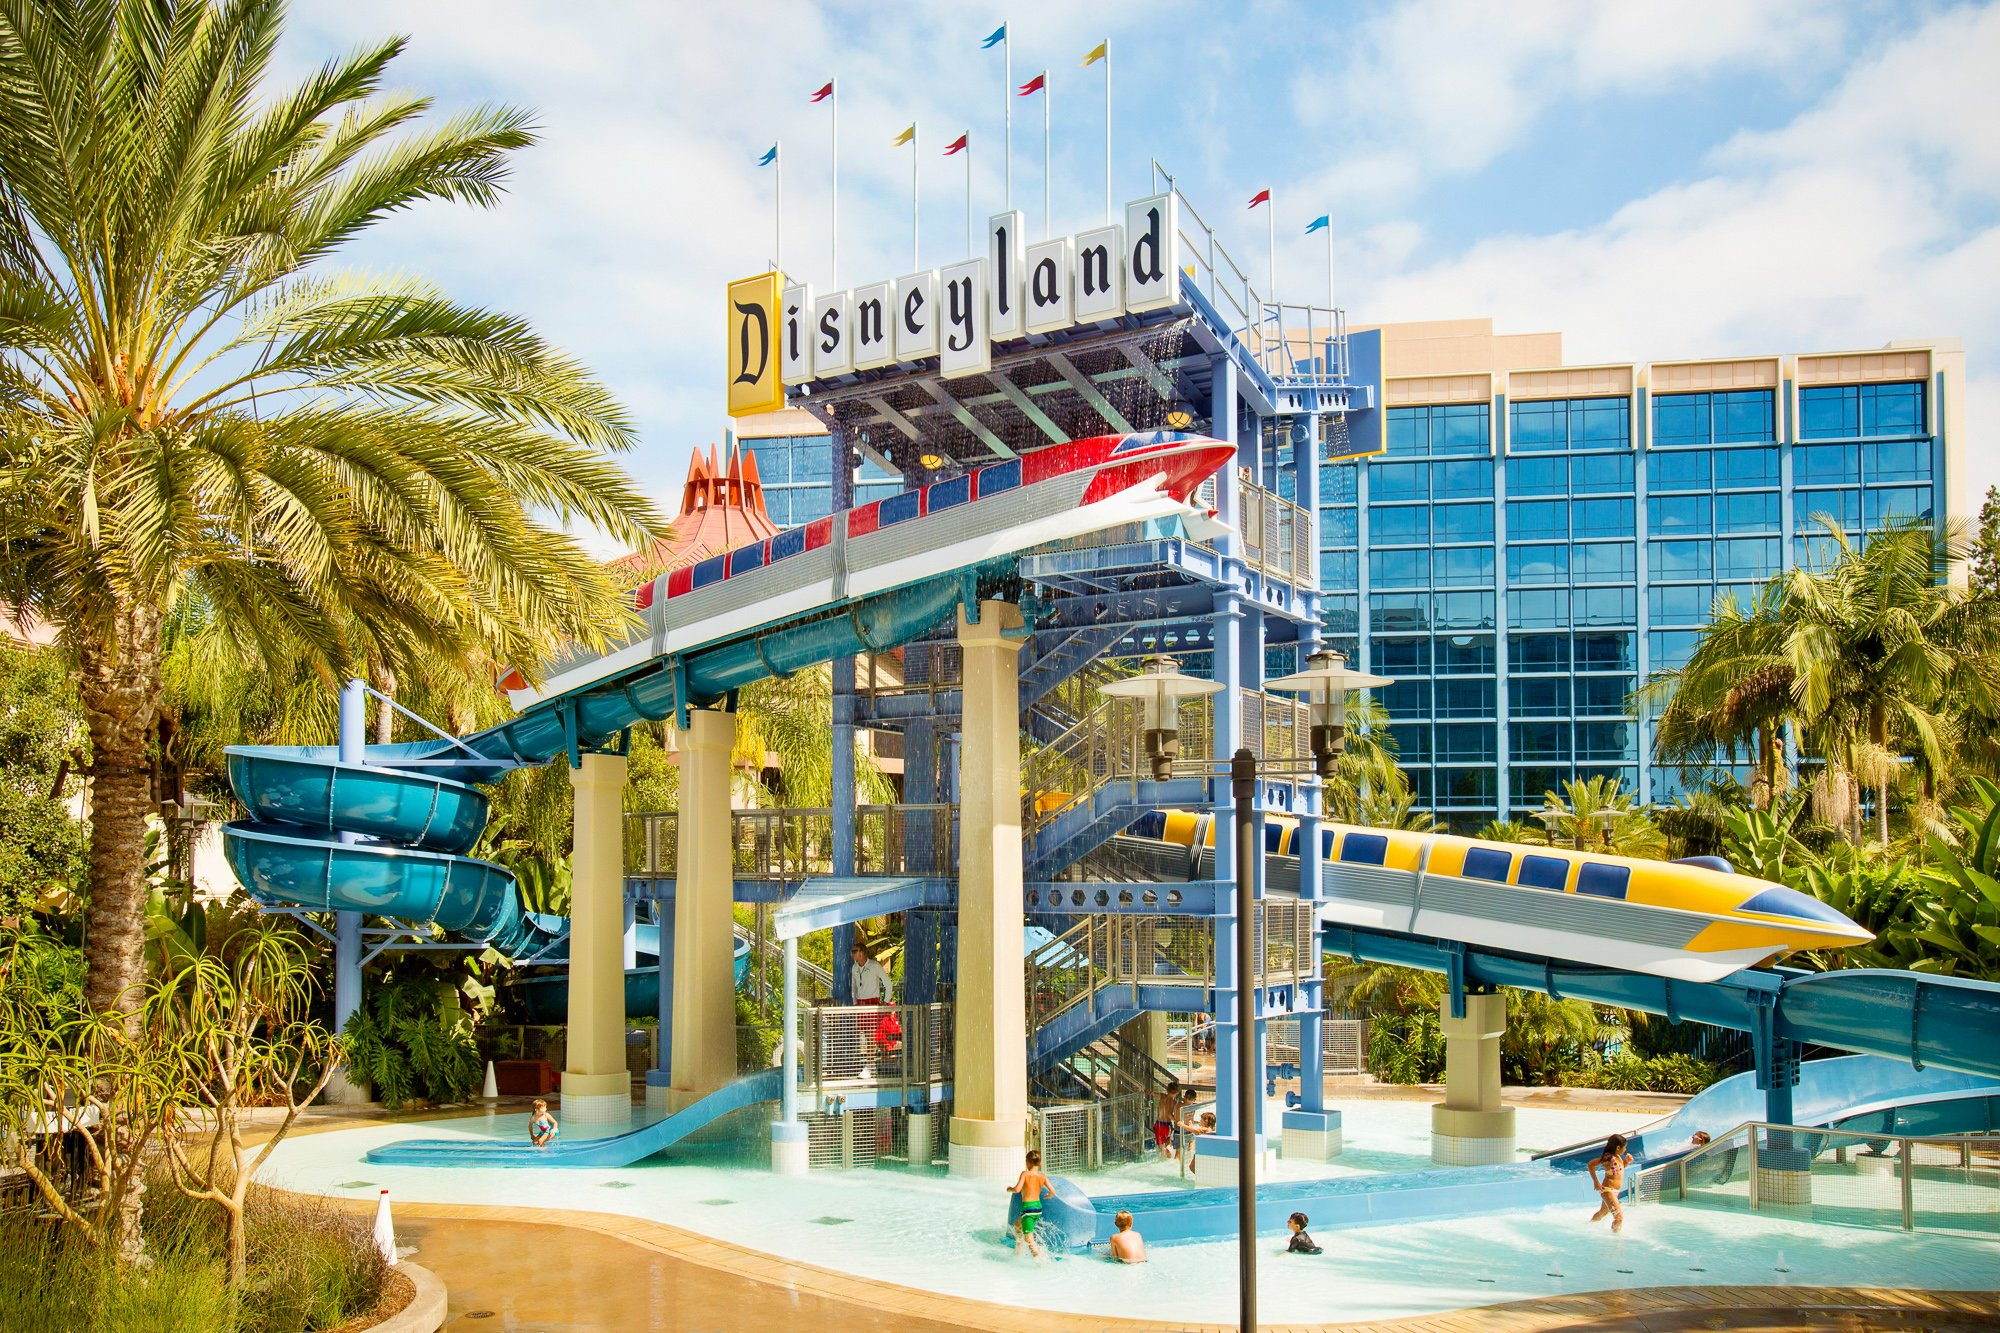 Disneyland Hotel's Monorail Slide Pool